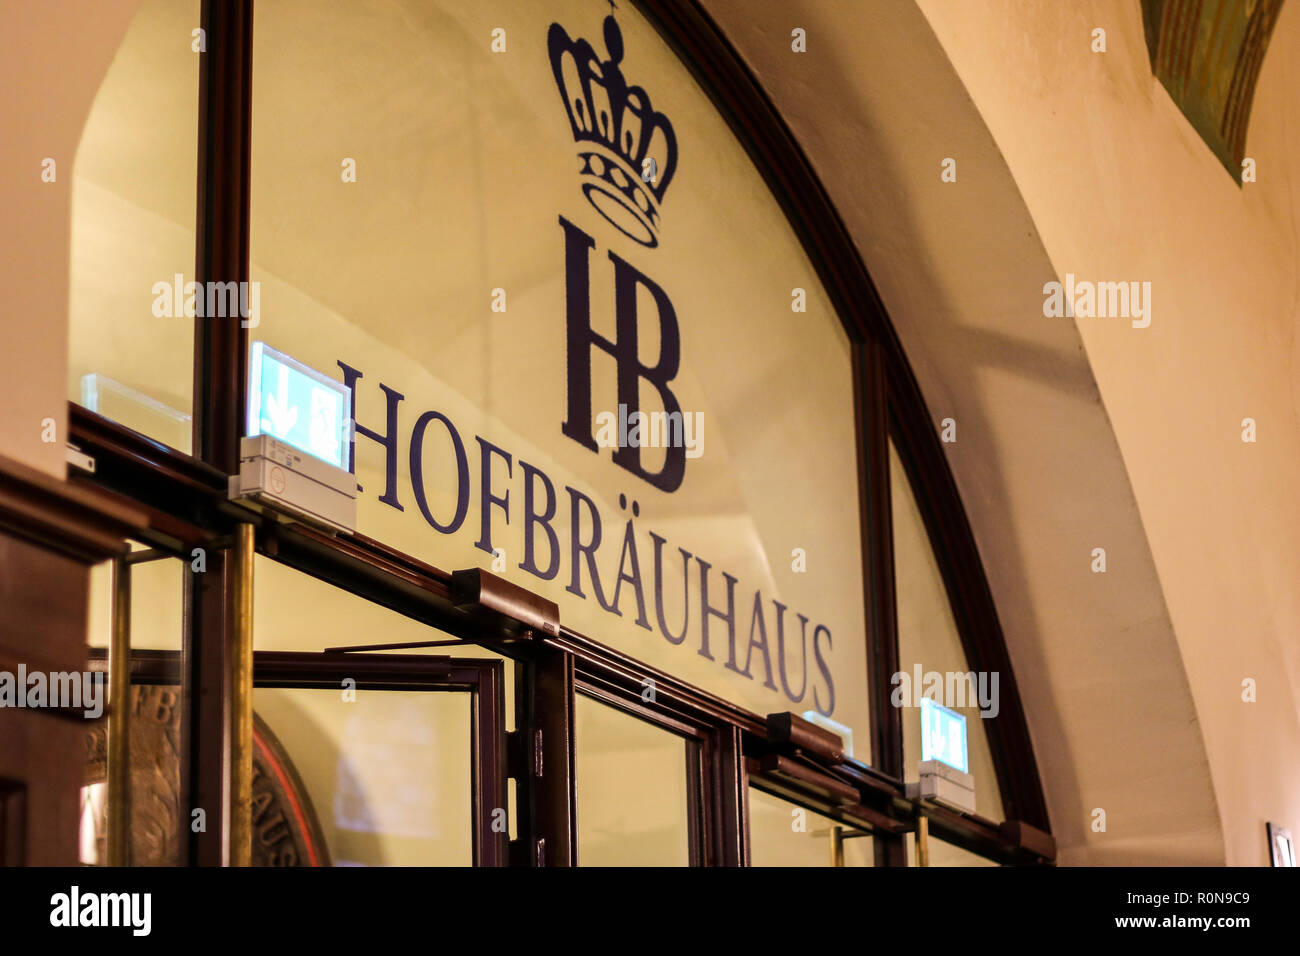 Entrance hofbrauhaus, famous beer hall, Munich, Munchen, Germany, beer brew house - Stock Image